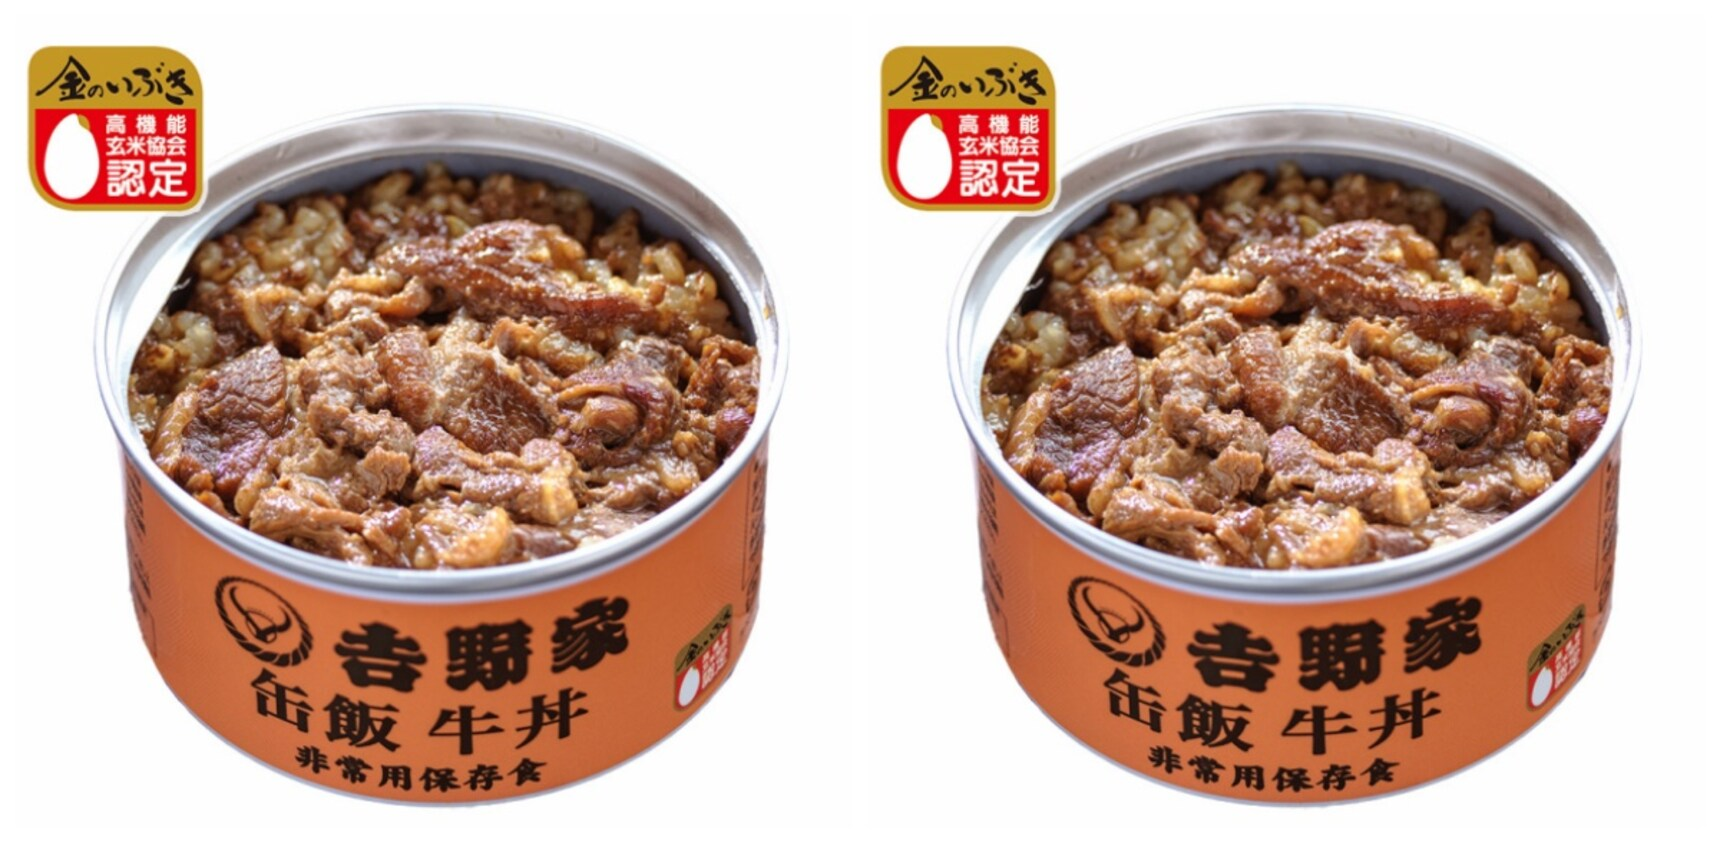 Yoshinoya Beef Bowl Coming to a Can Near You!